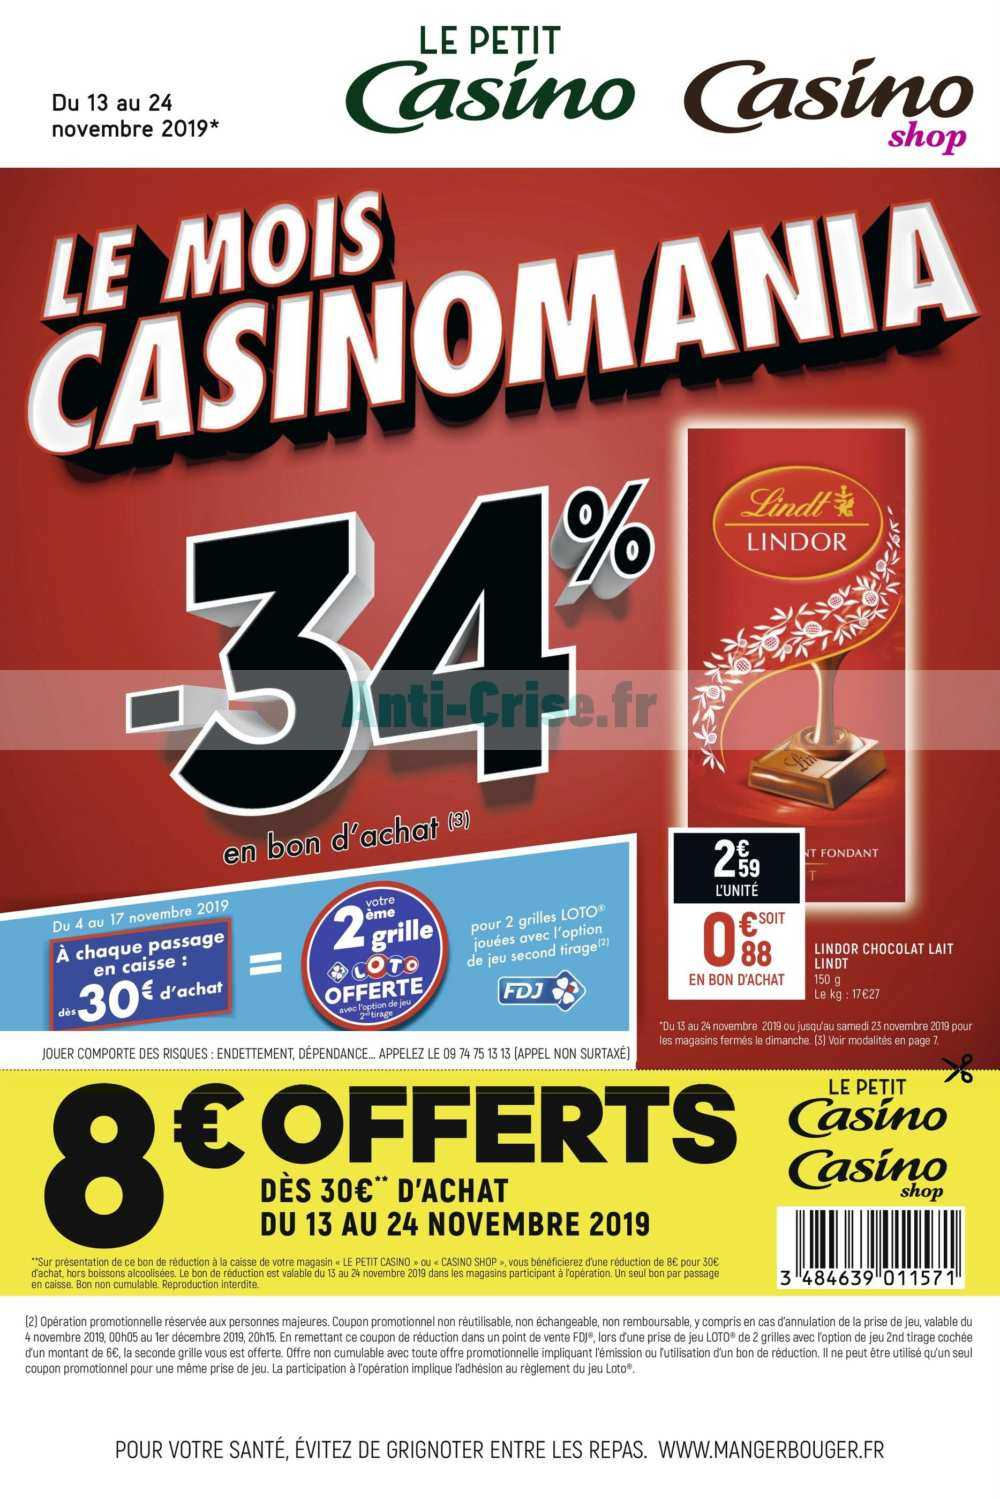 https://media.anti-crise.fr/2019/11/novembre2019petit-casino1311201924112019S0C0le-Mois-1-200x300.jpg